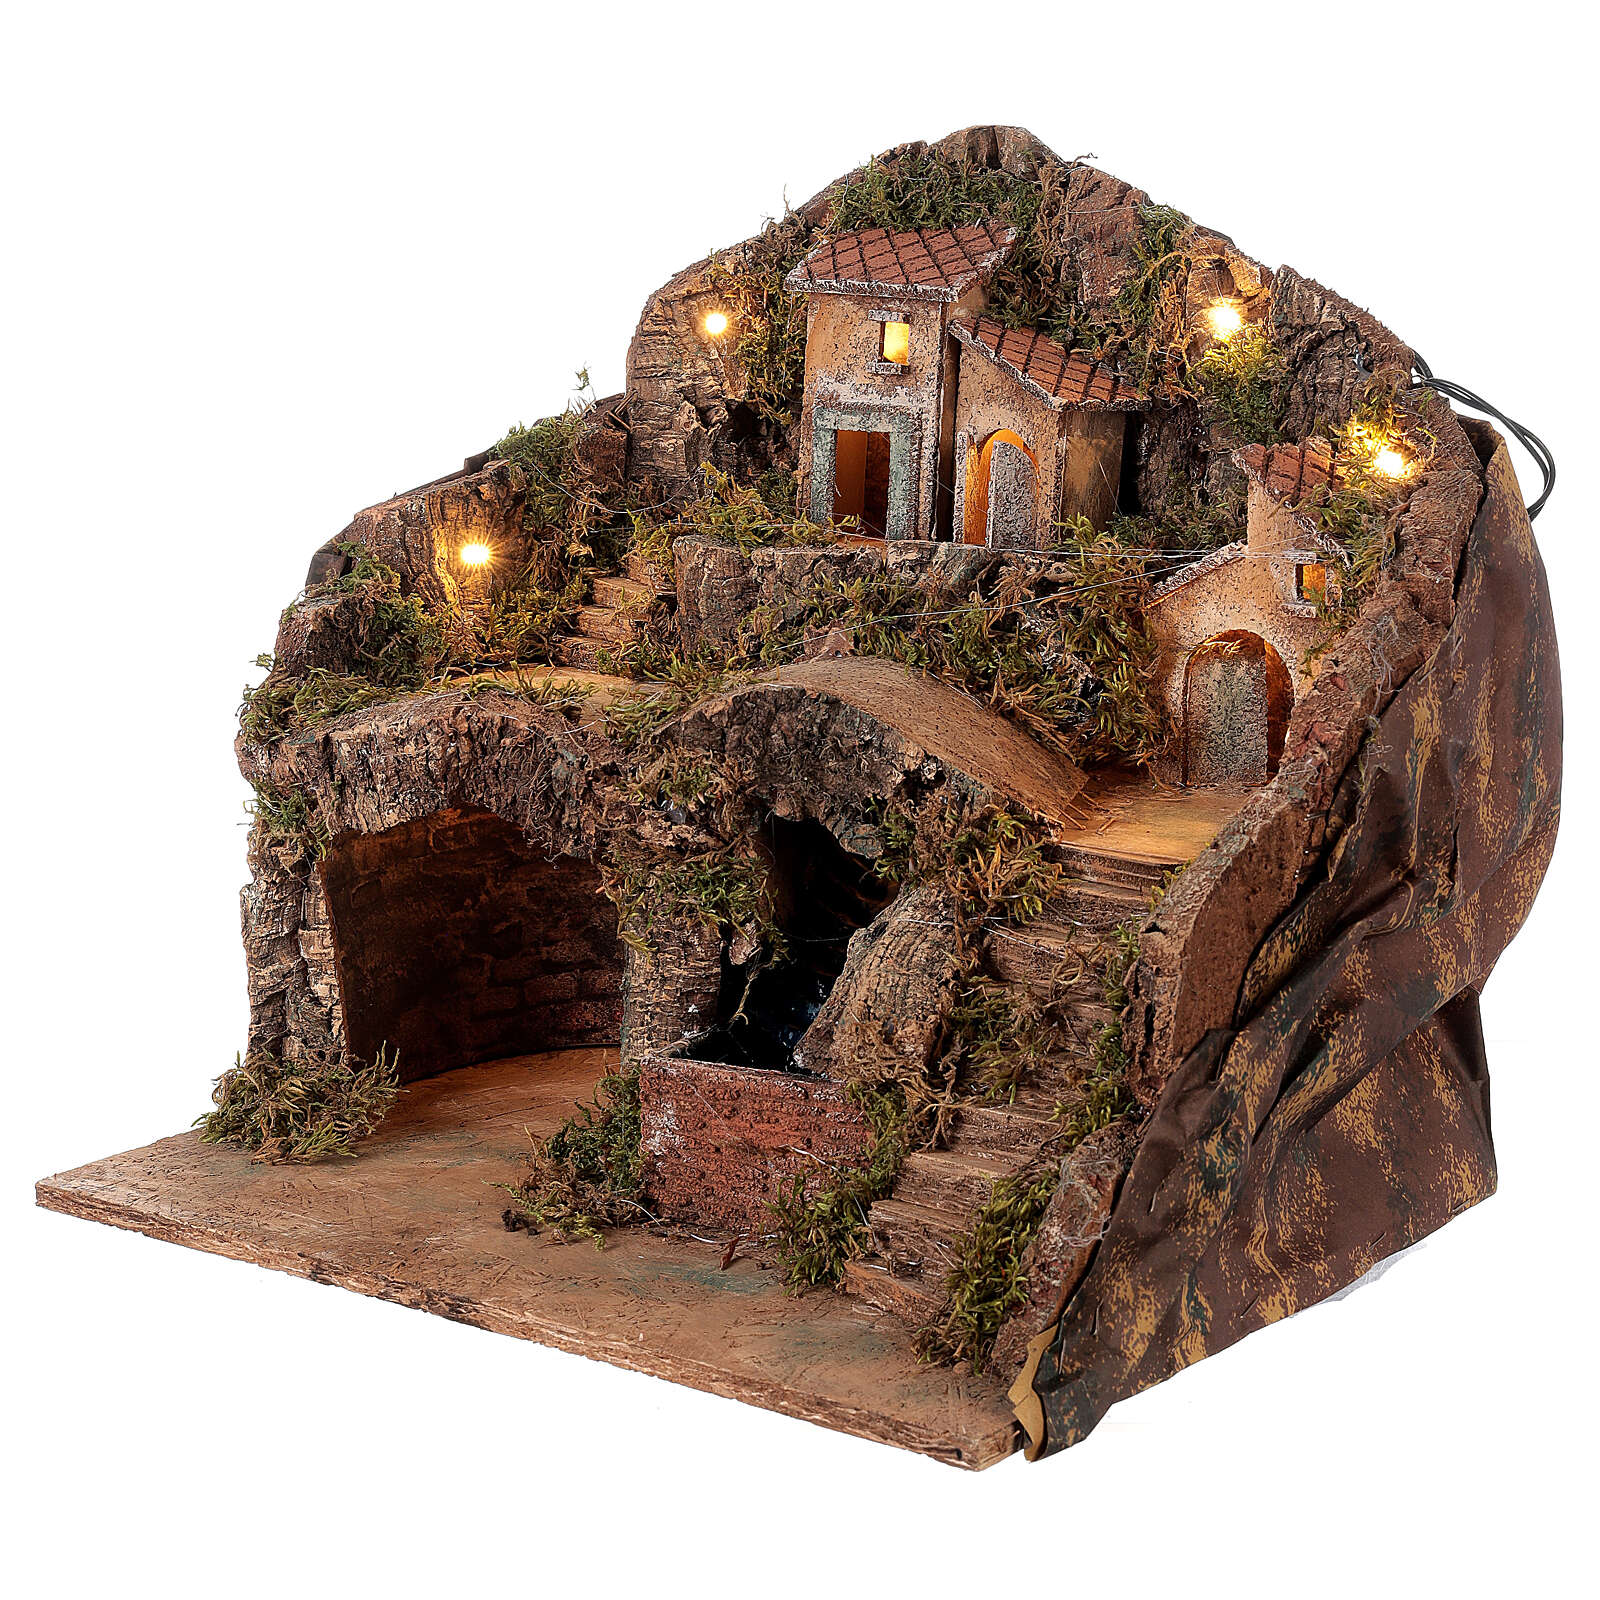 Village for Neapolitan Nativity scene with bridge and waterfall 35x40x30 cm 4